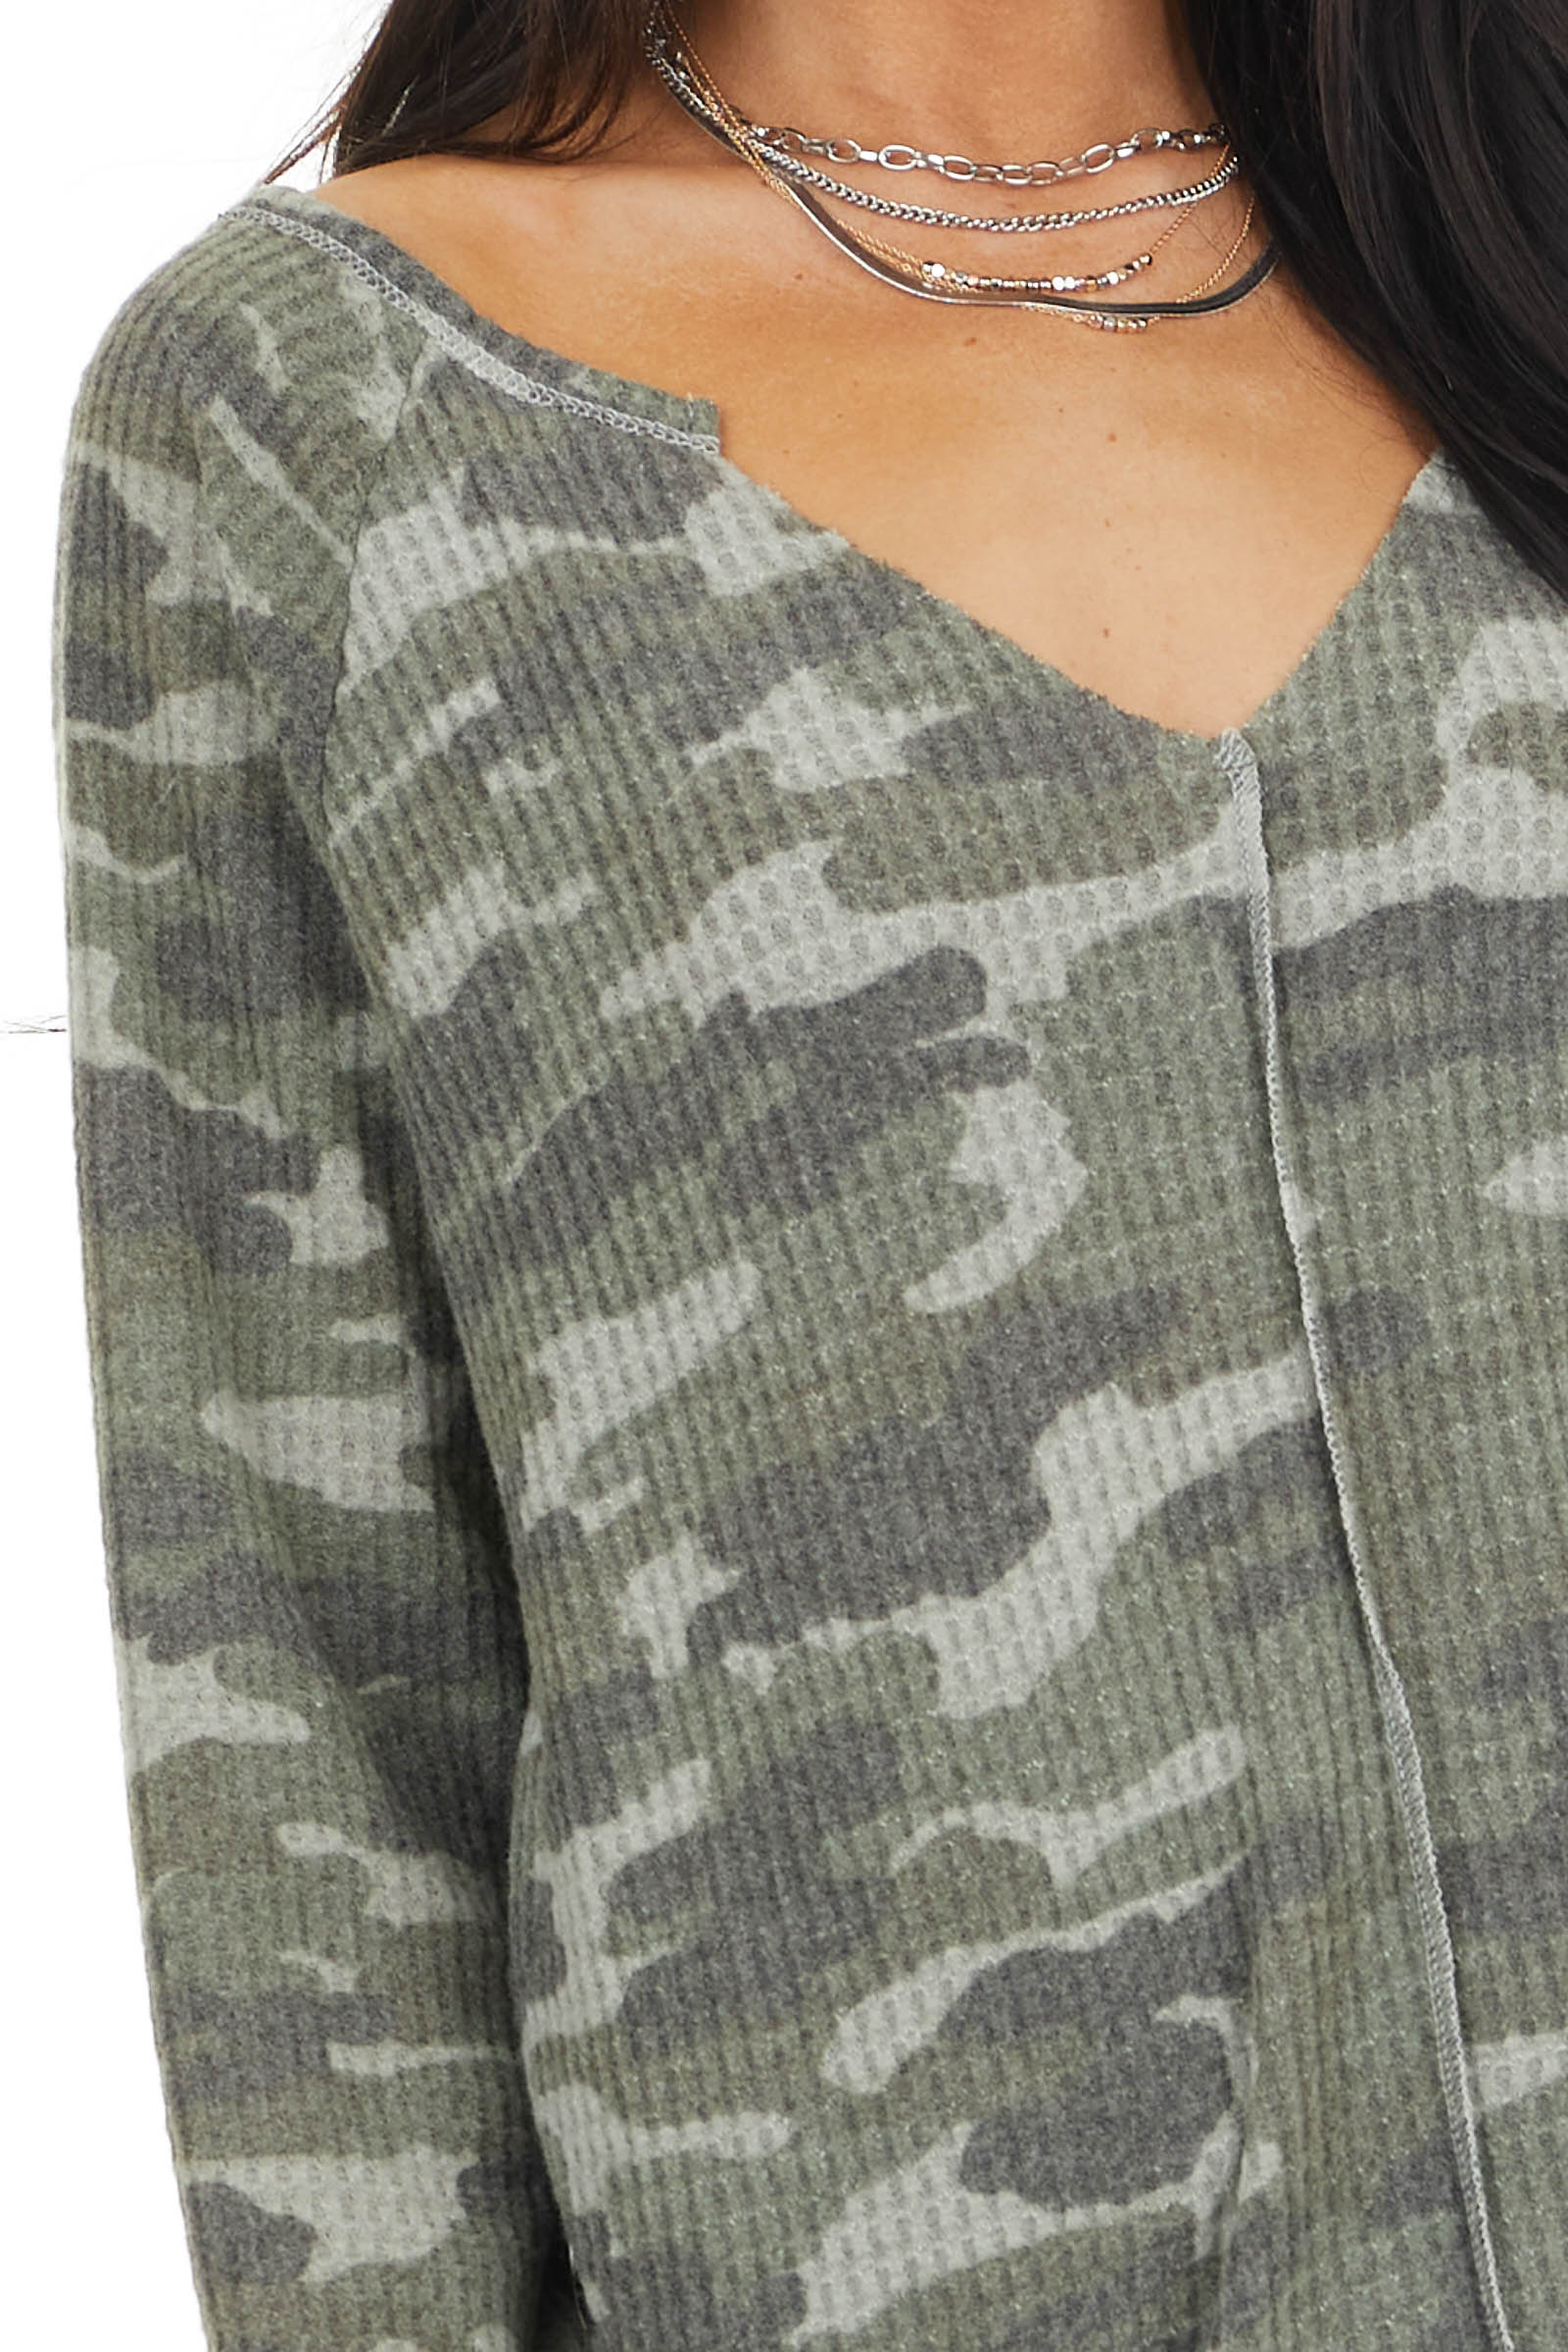 Olive Camo Print Waffle Knit Top with Exposed Stitching